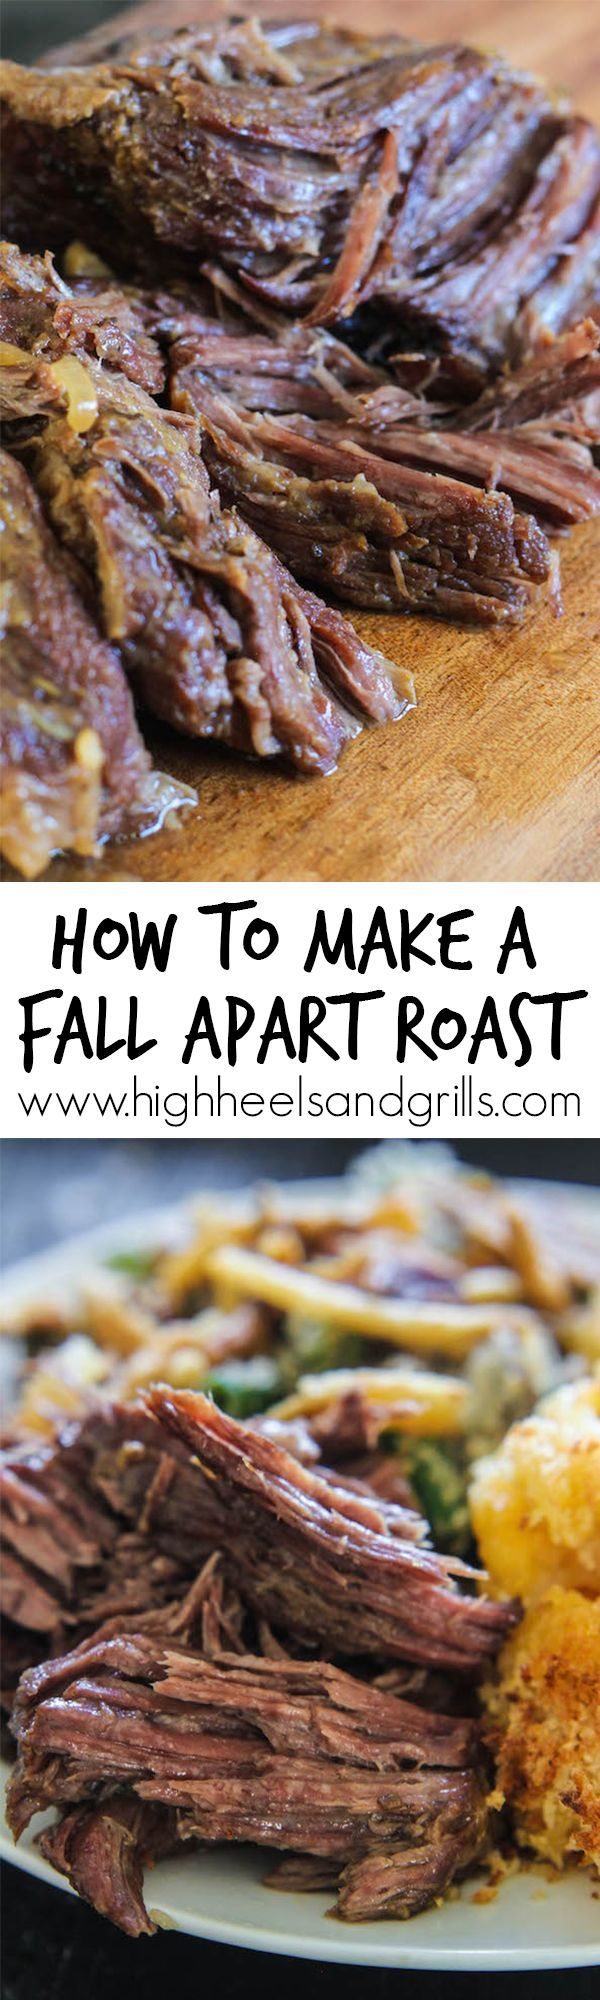 How to Make a Fall Apart Roast - One that will melt in your mouth dishes and takes little effort